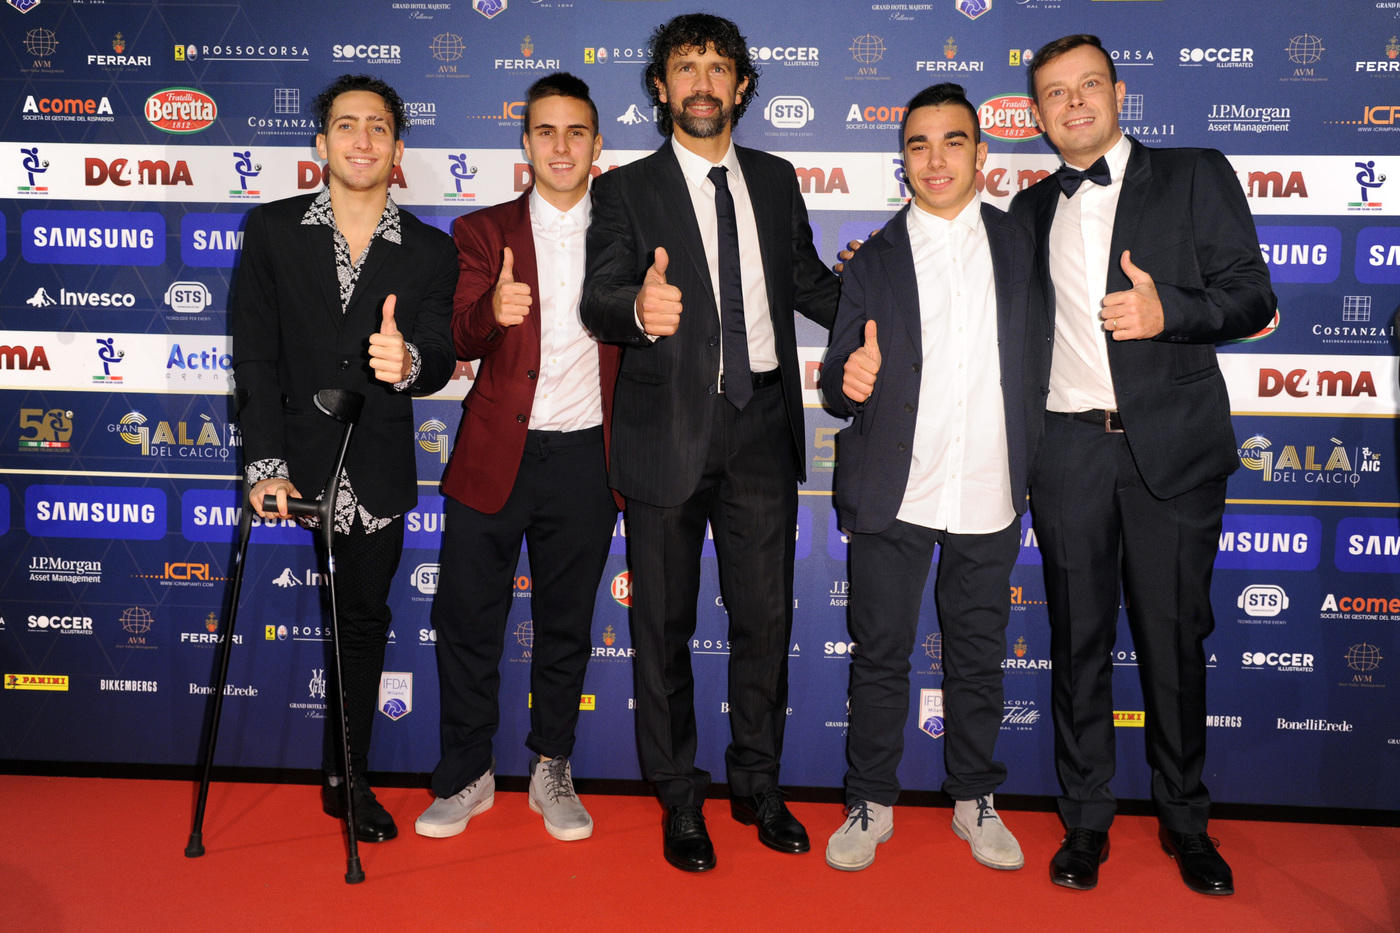 Gran Galà del Calcio, il red carpet